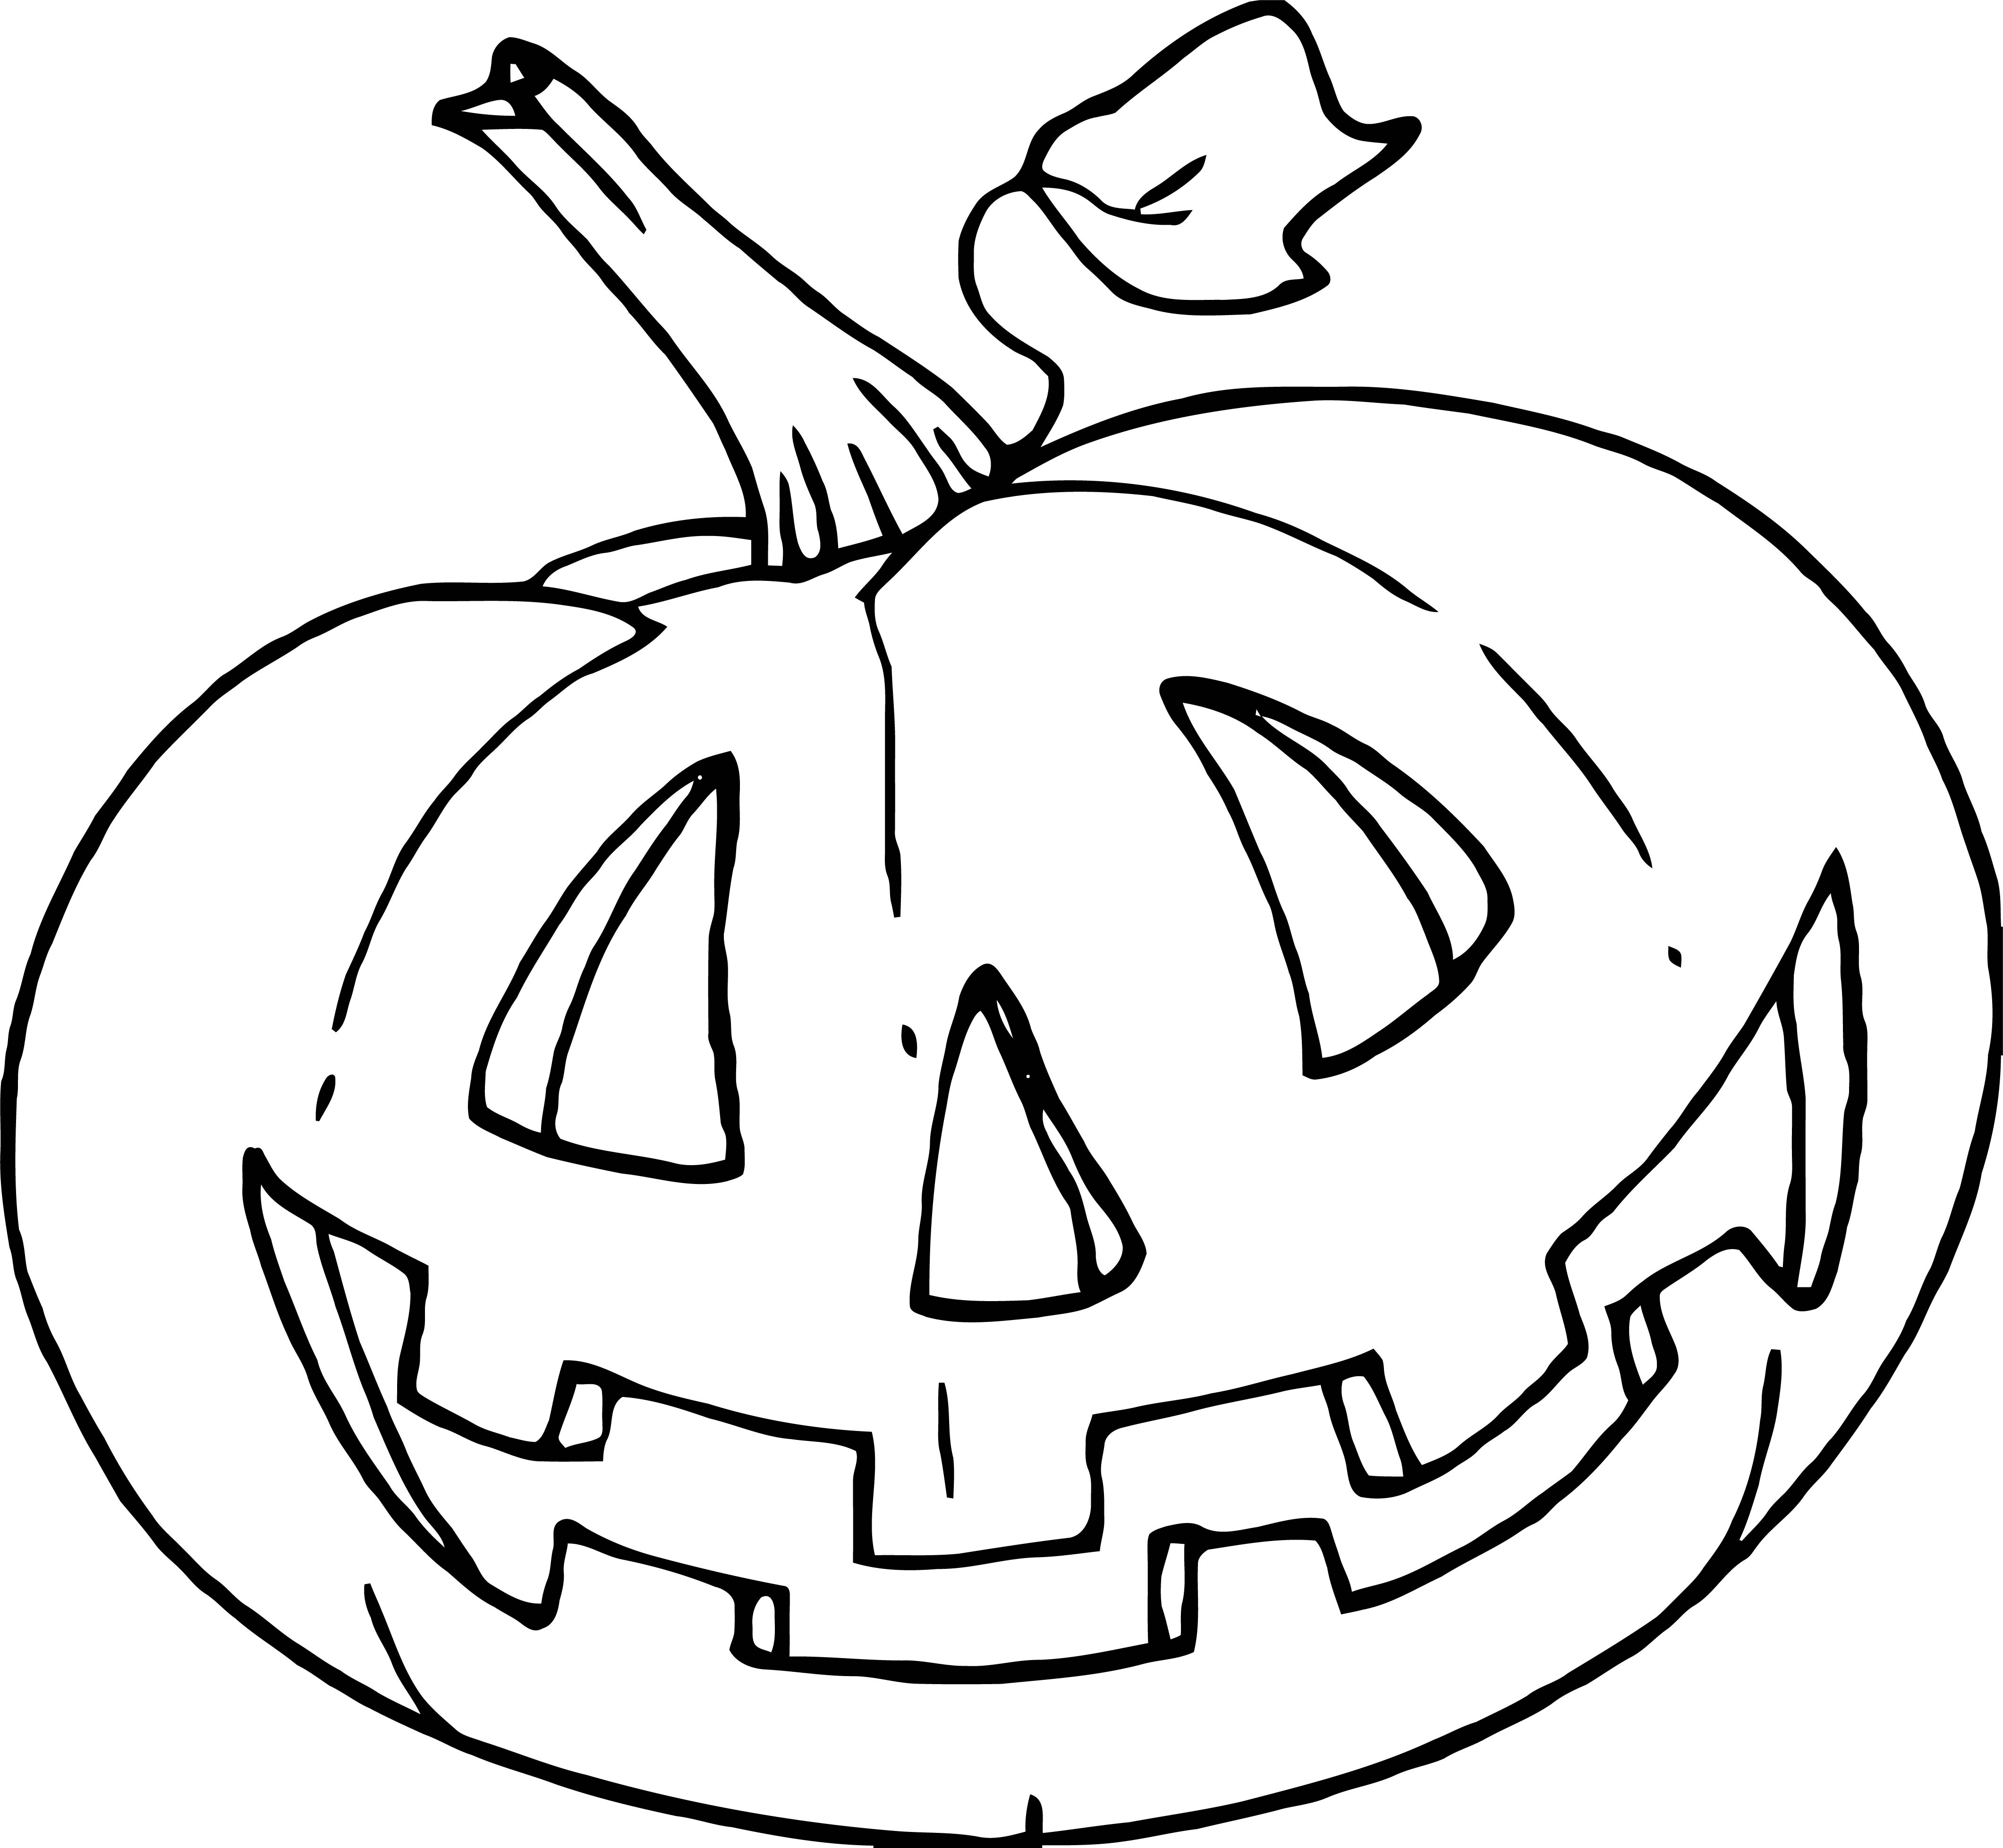 Just Halloween Pumpkin Coloring Page